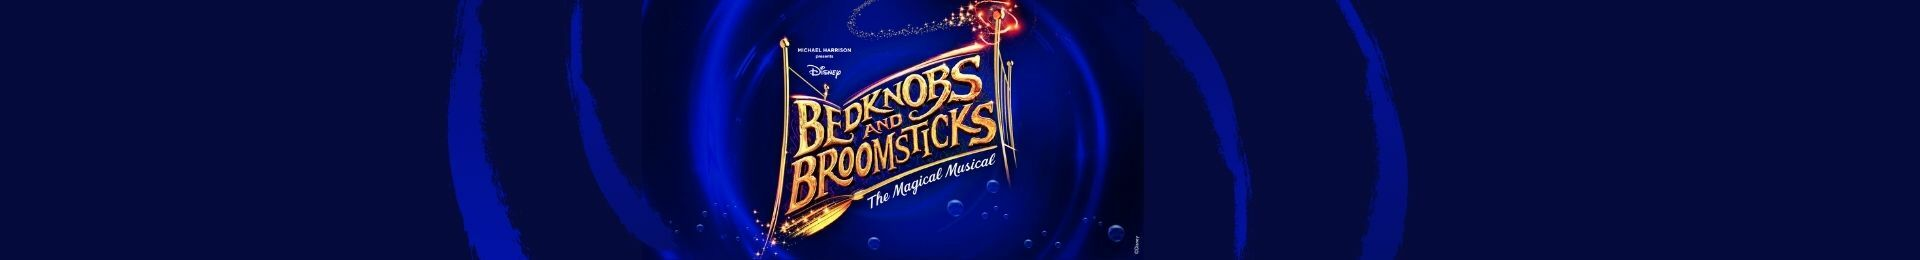 Bedknobs and Broomsticks banner image